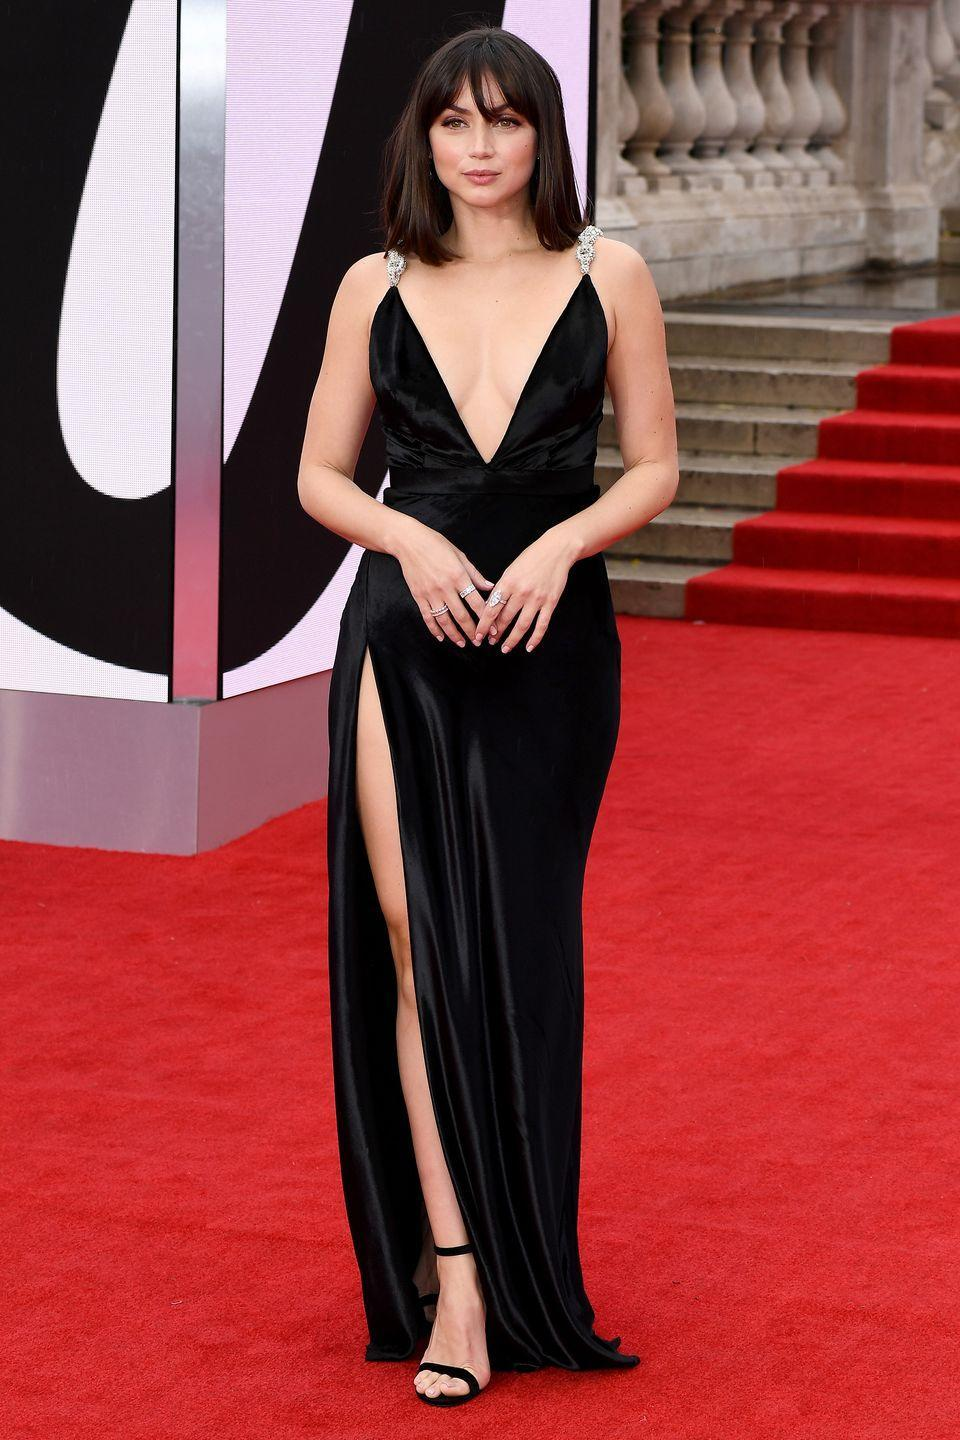 """<p>Ana de Armas wore a silky black Louis Vuitton dress with embellished straps, a look that nodded to the <a href=""""https://www.harpersbazaar.com/uk/fashion/fashion-news/a37771489/no-time-to-die-on-set-ana-de-armas/"""" rel=""""nofollow noopener"""" target=""""_blank"""" data-ylk=""""slk:simple black gown she wears in the film"""" class=""""link rapid-noclick-resp"""">simple black gown she wears in the film</a>. She finished her look with Chopard jewellery.</p>"""